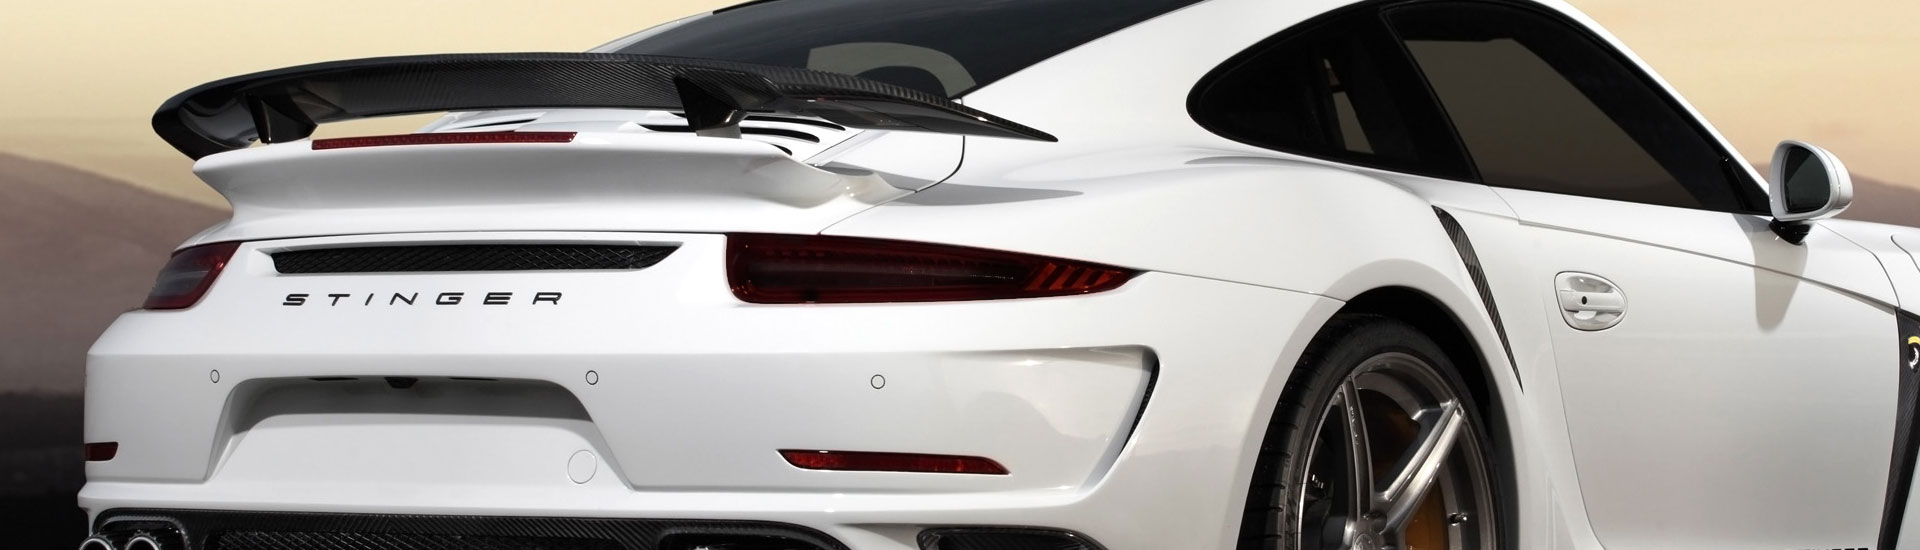 Porsche  Tail Light Tint Covers